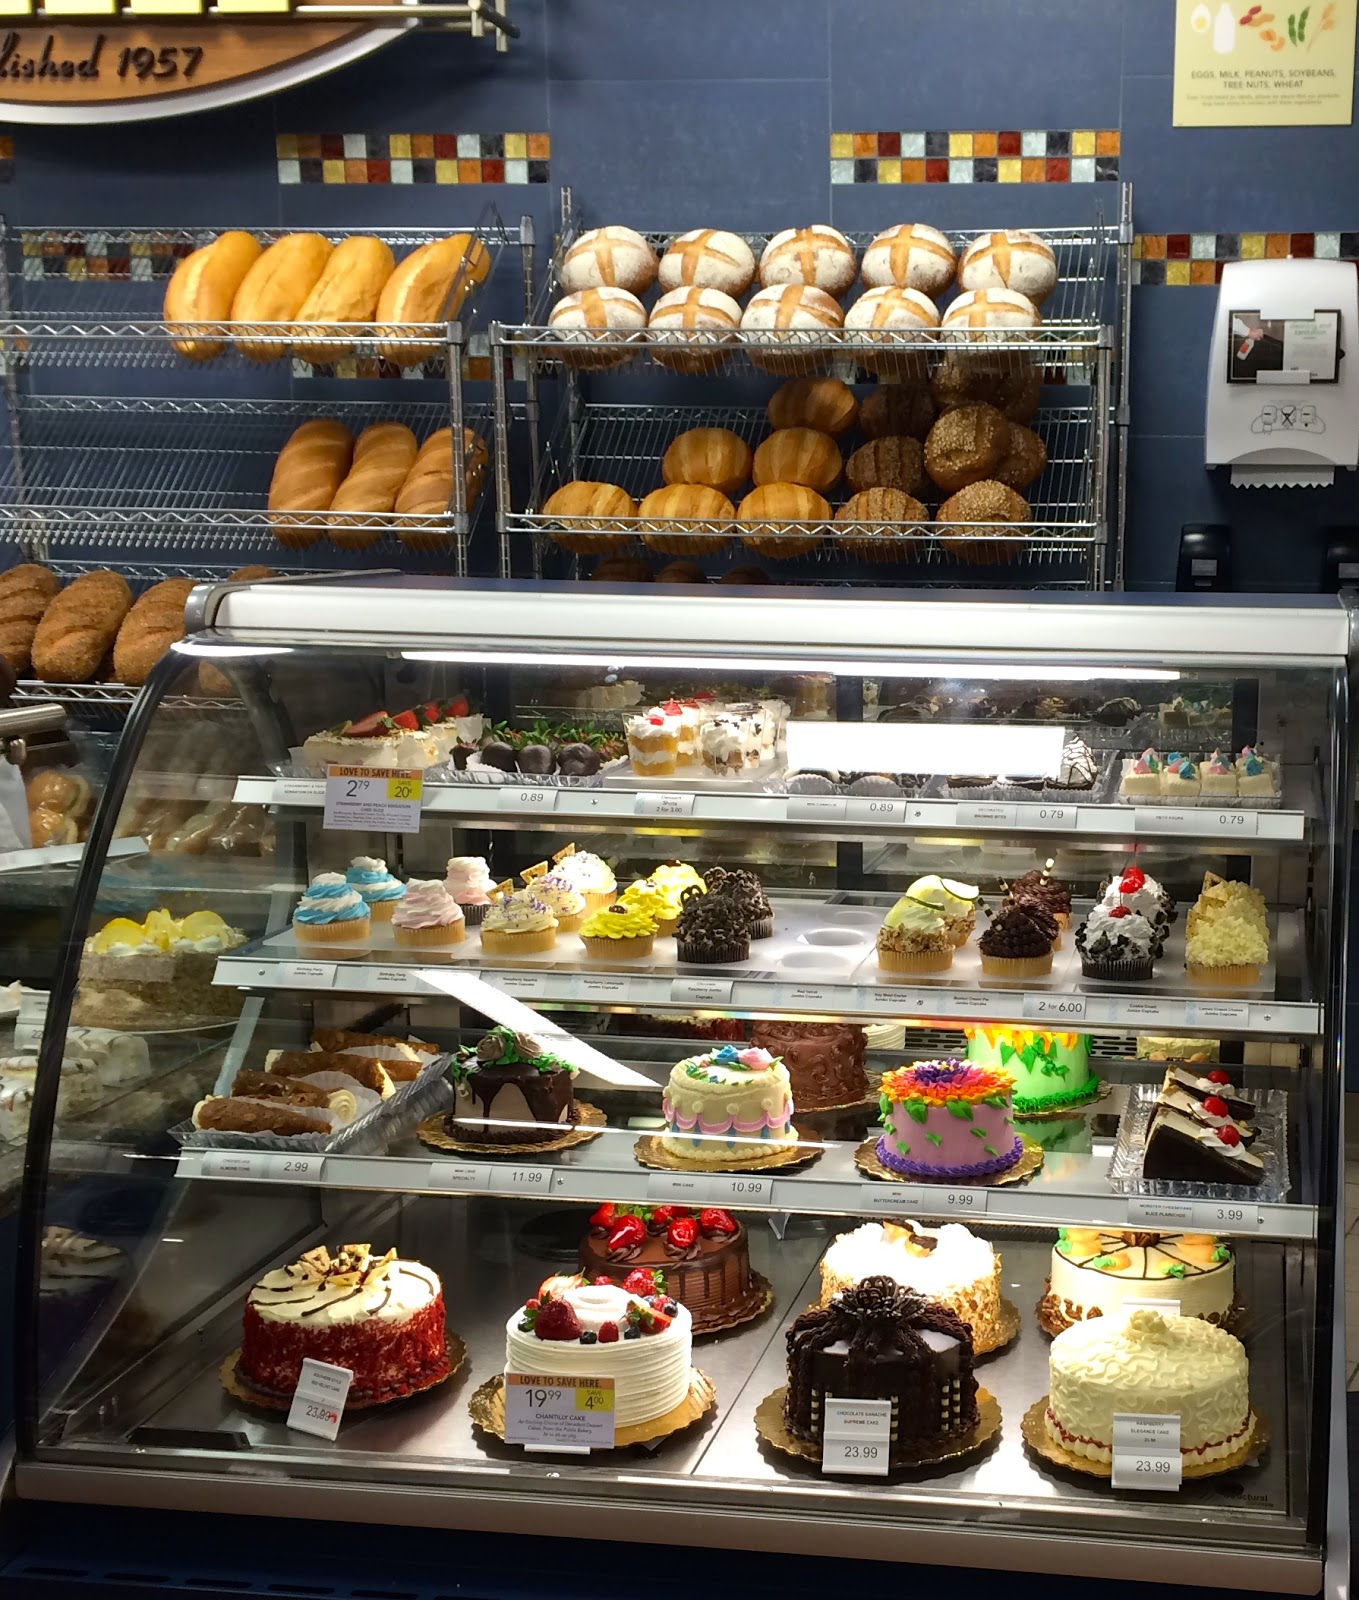 We make happiness in our Bakery. Smell the bread coming out of the oven. See the countless beautiful pastries and cakes arrayed behind glass. Imagine how delicious the danishes, donuts, brownies, pies, and muffins must taste.